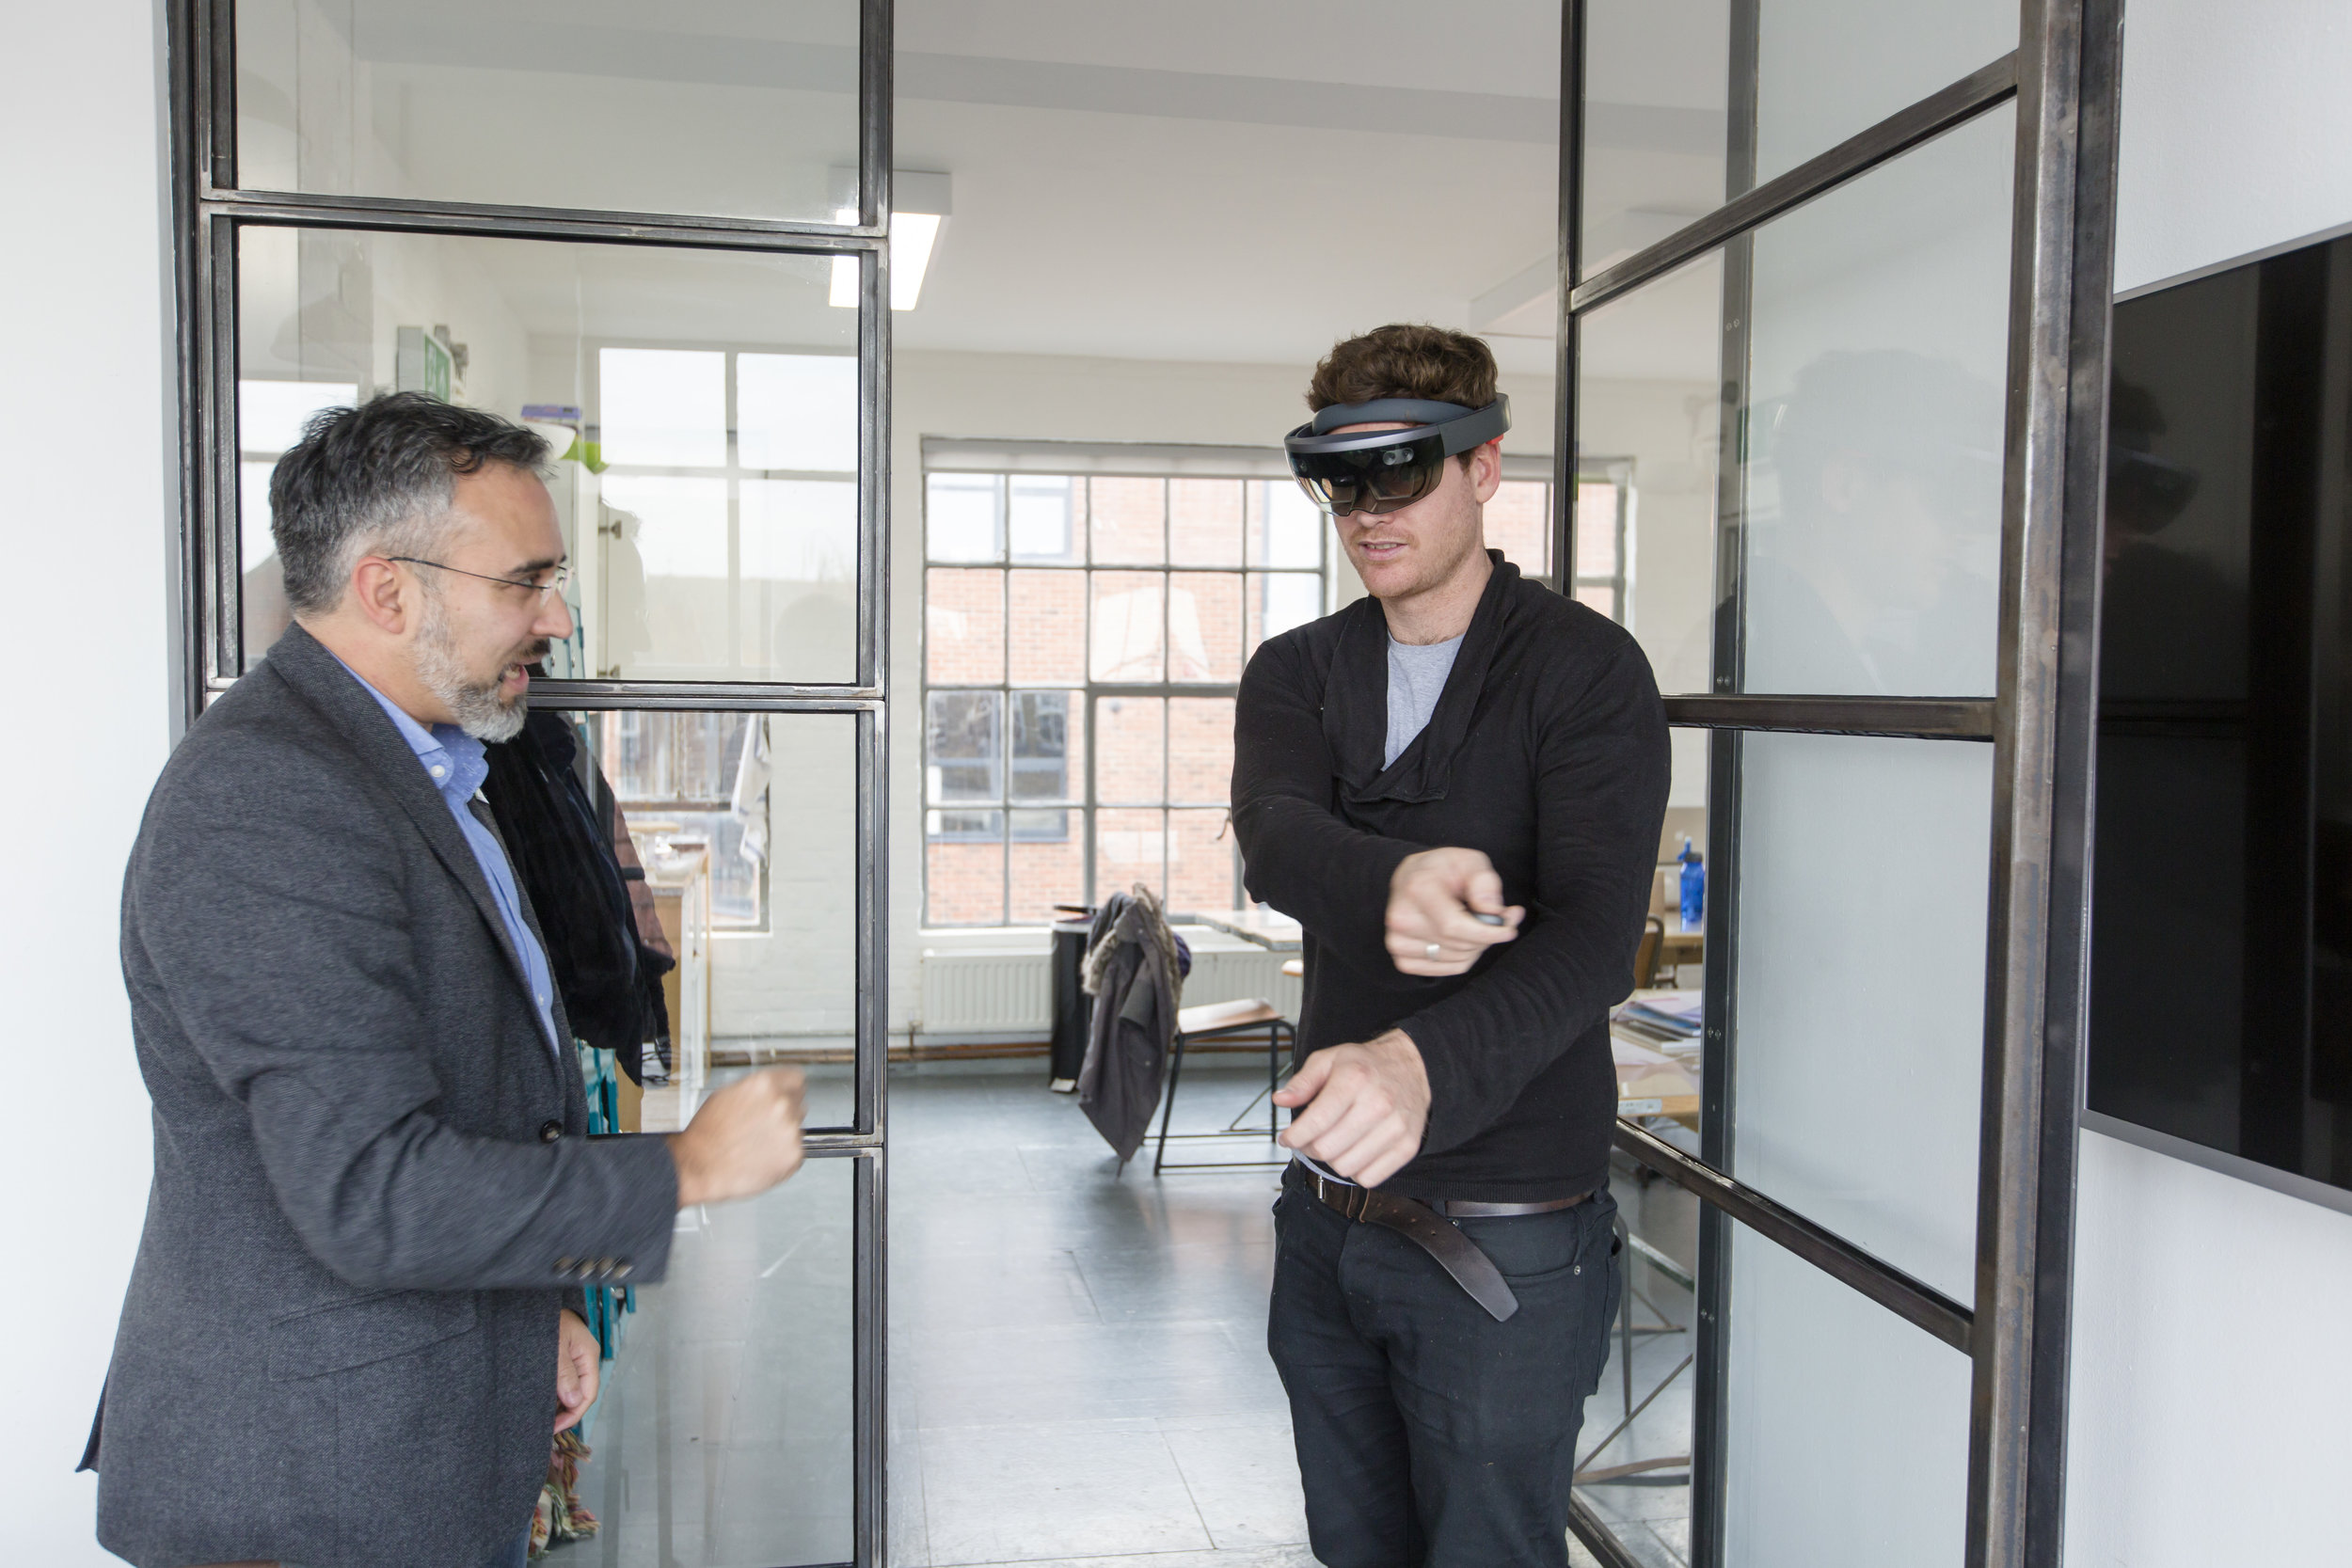 east-london-architect-hololens-2.jpg